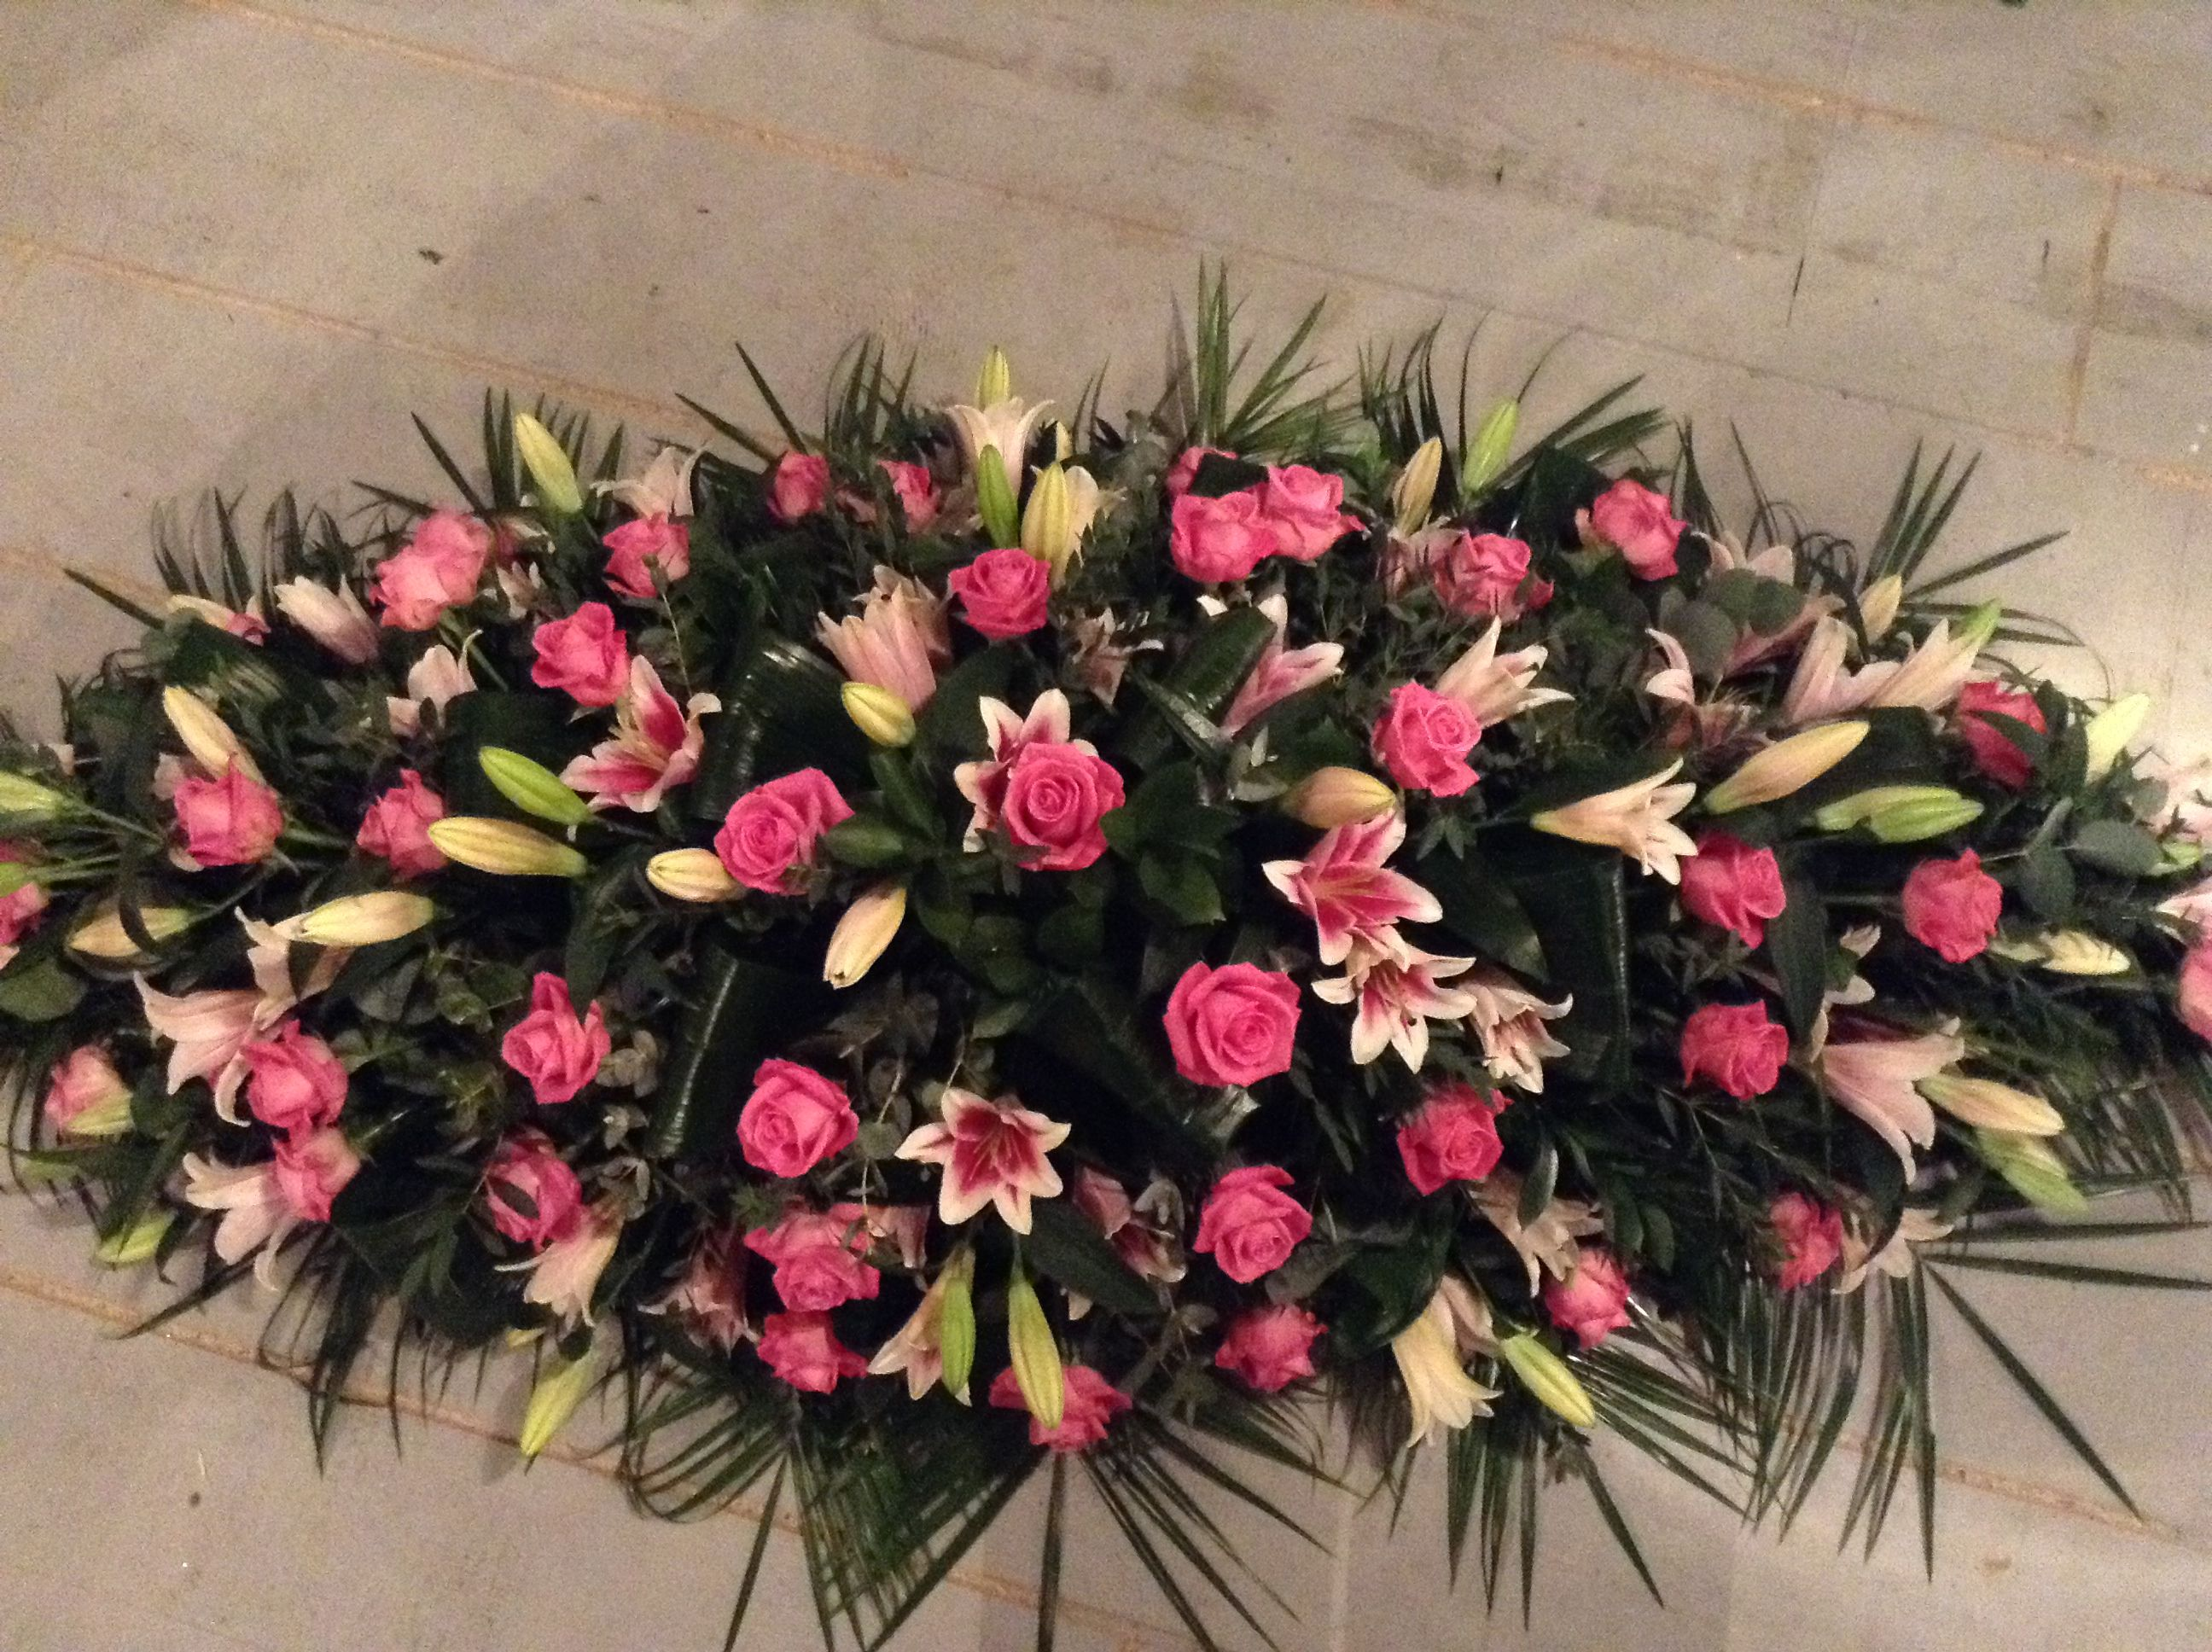 Funeral flowers rose and lily coffin spray pink rose and pink lily funeral flowers rose and lily coffin spray pink rose and pink lily funeral flowers izmirmasajfo